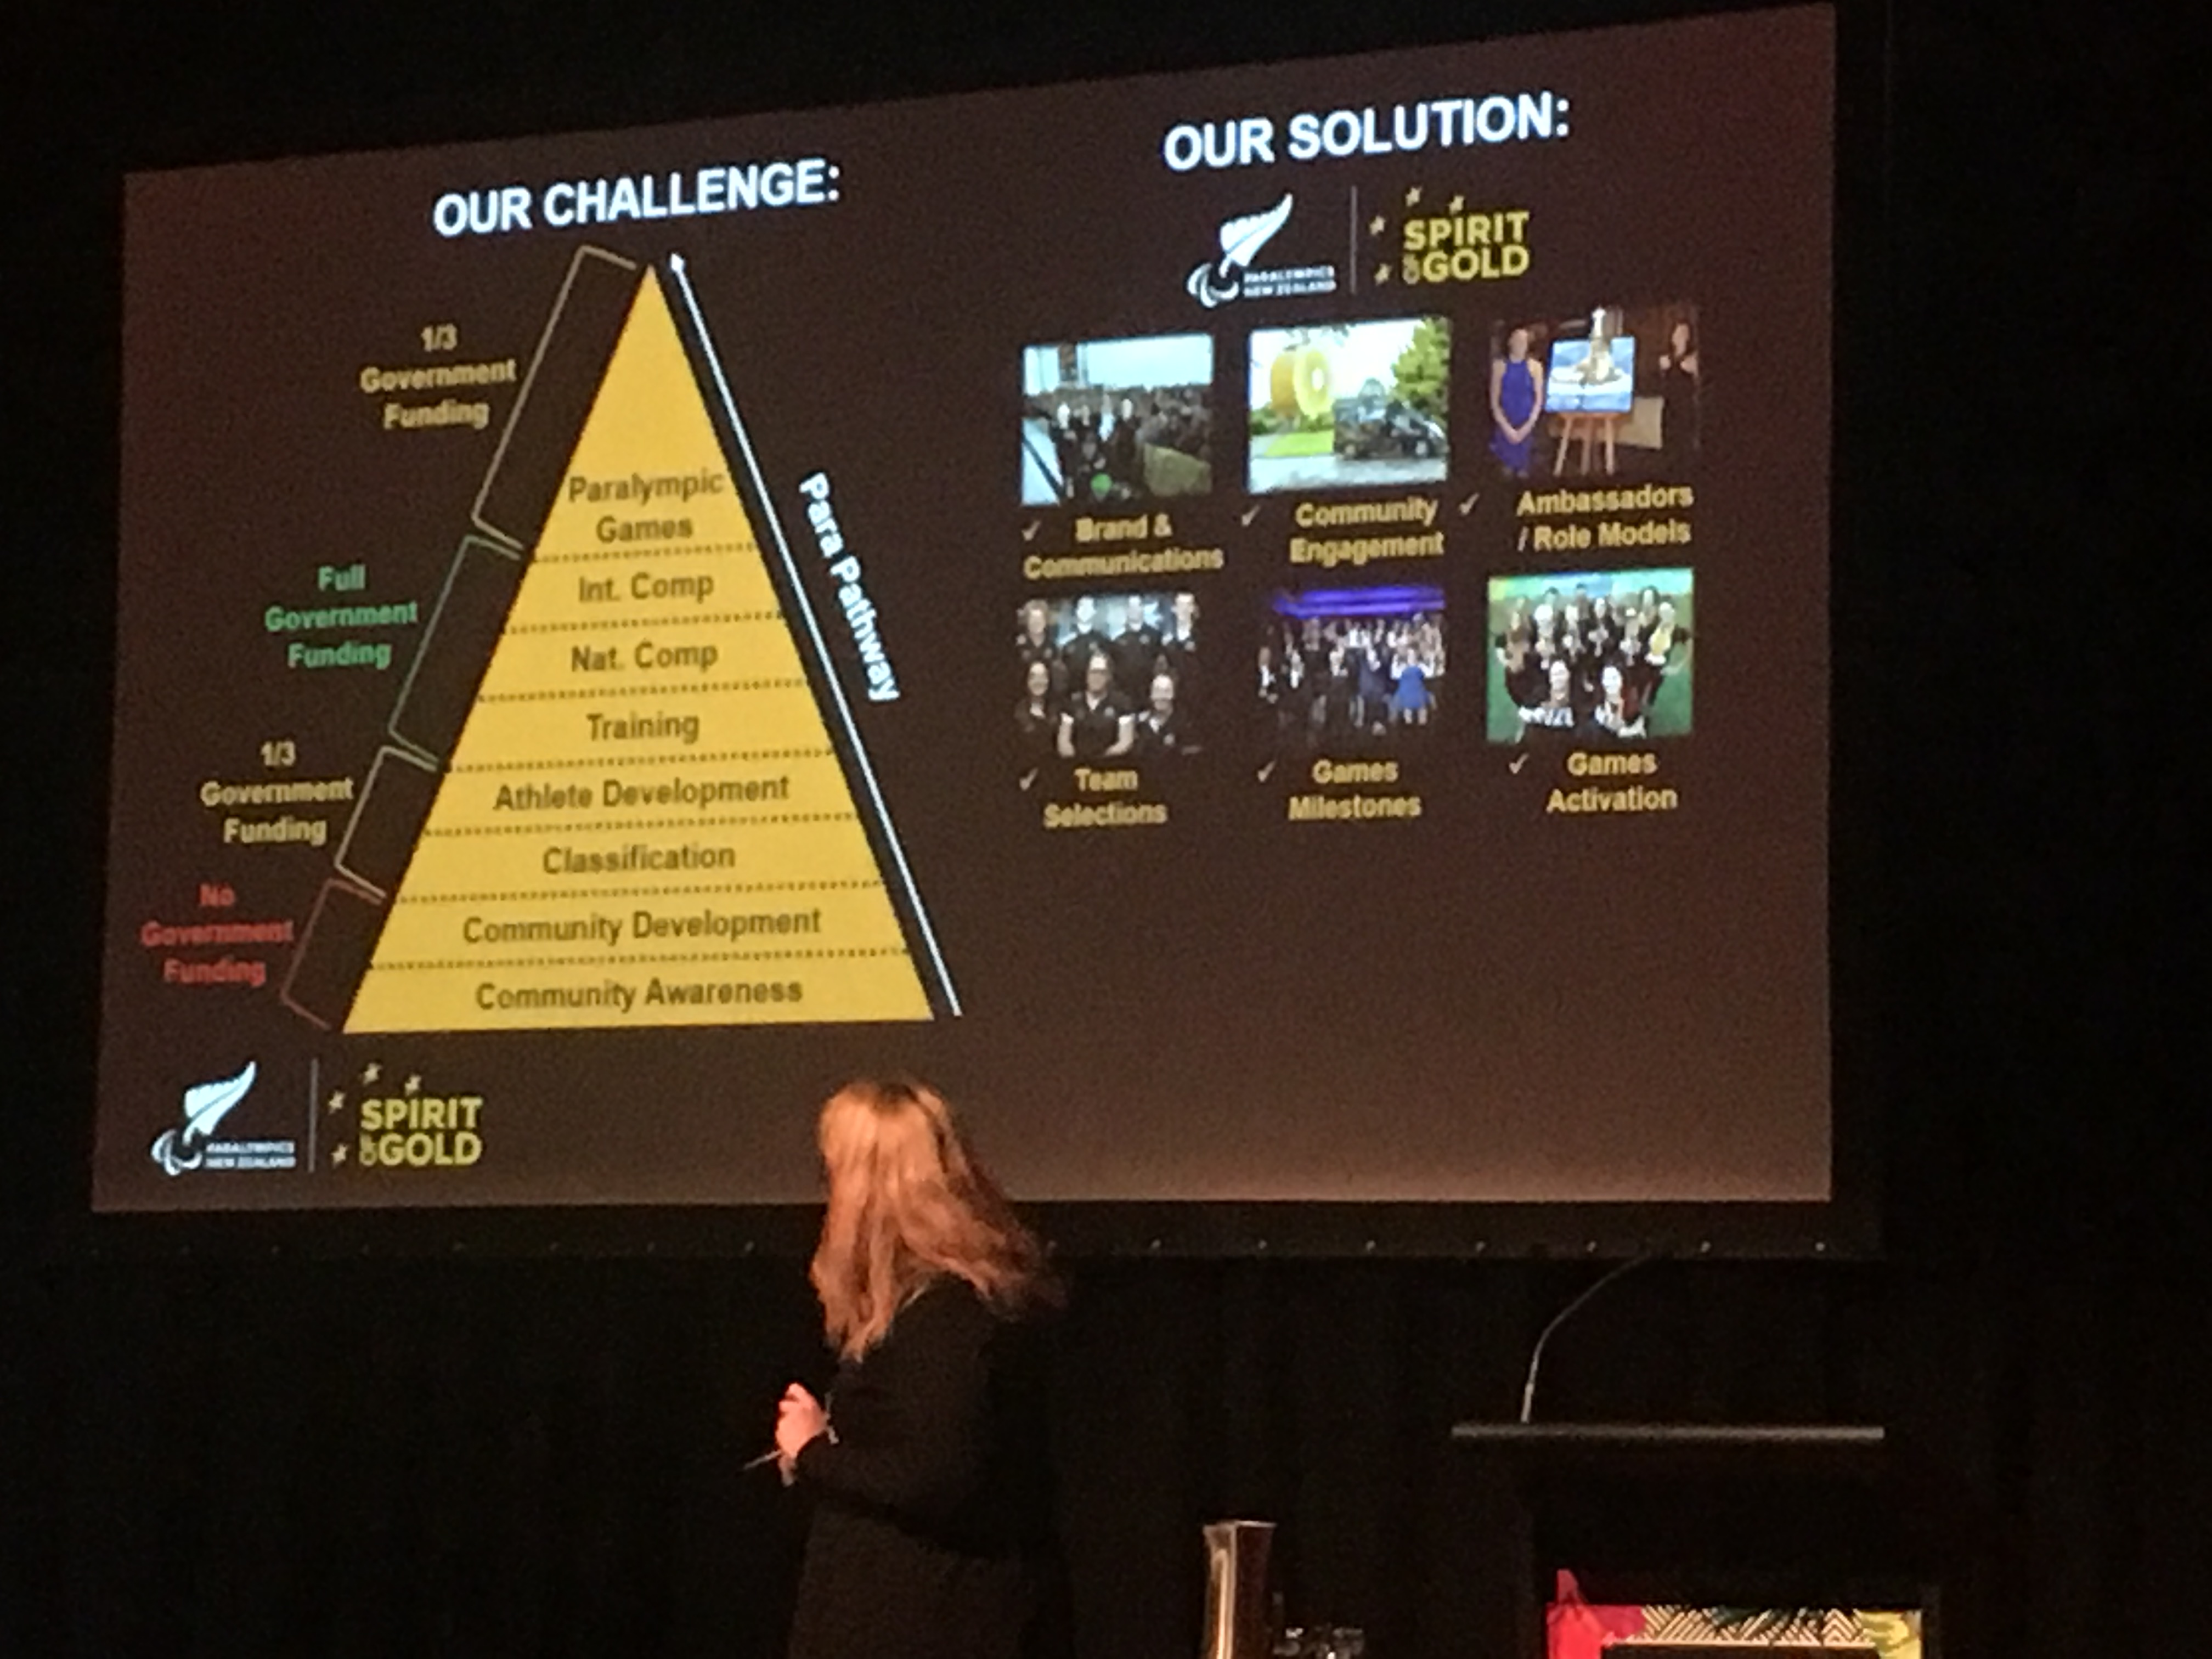 NZ Paralympics model of how to enable para sport and funding, spirit of gold,